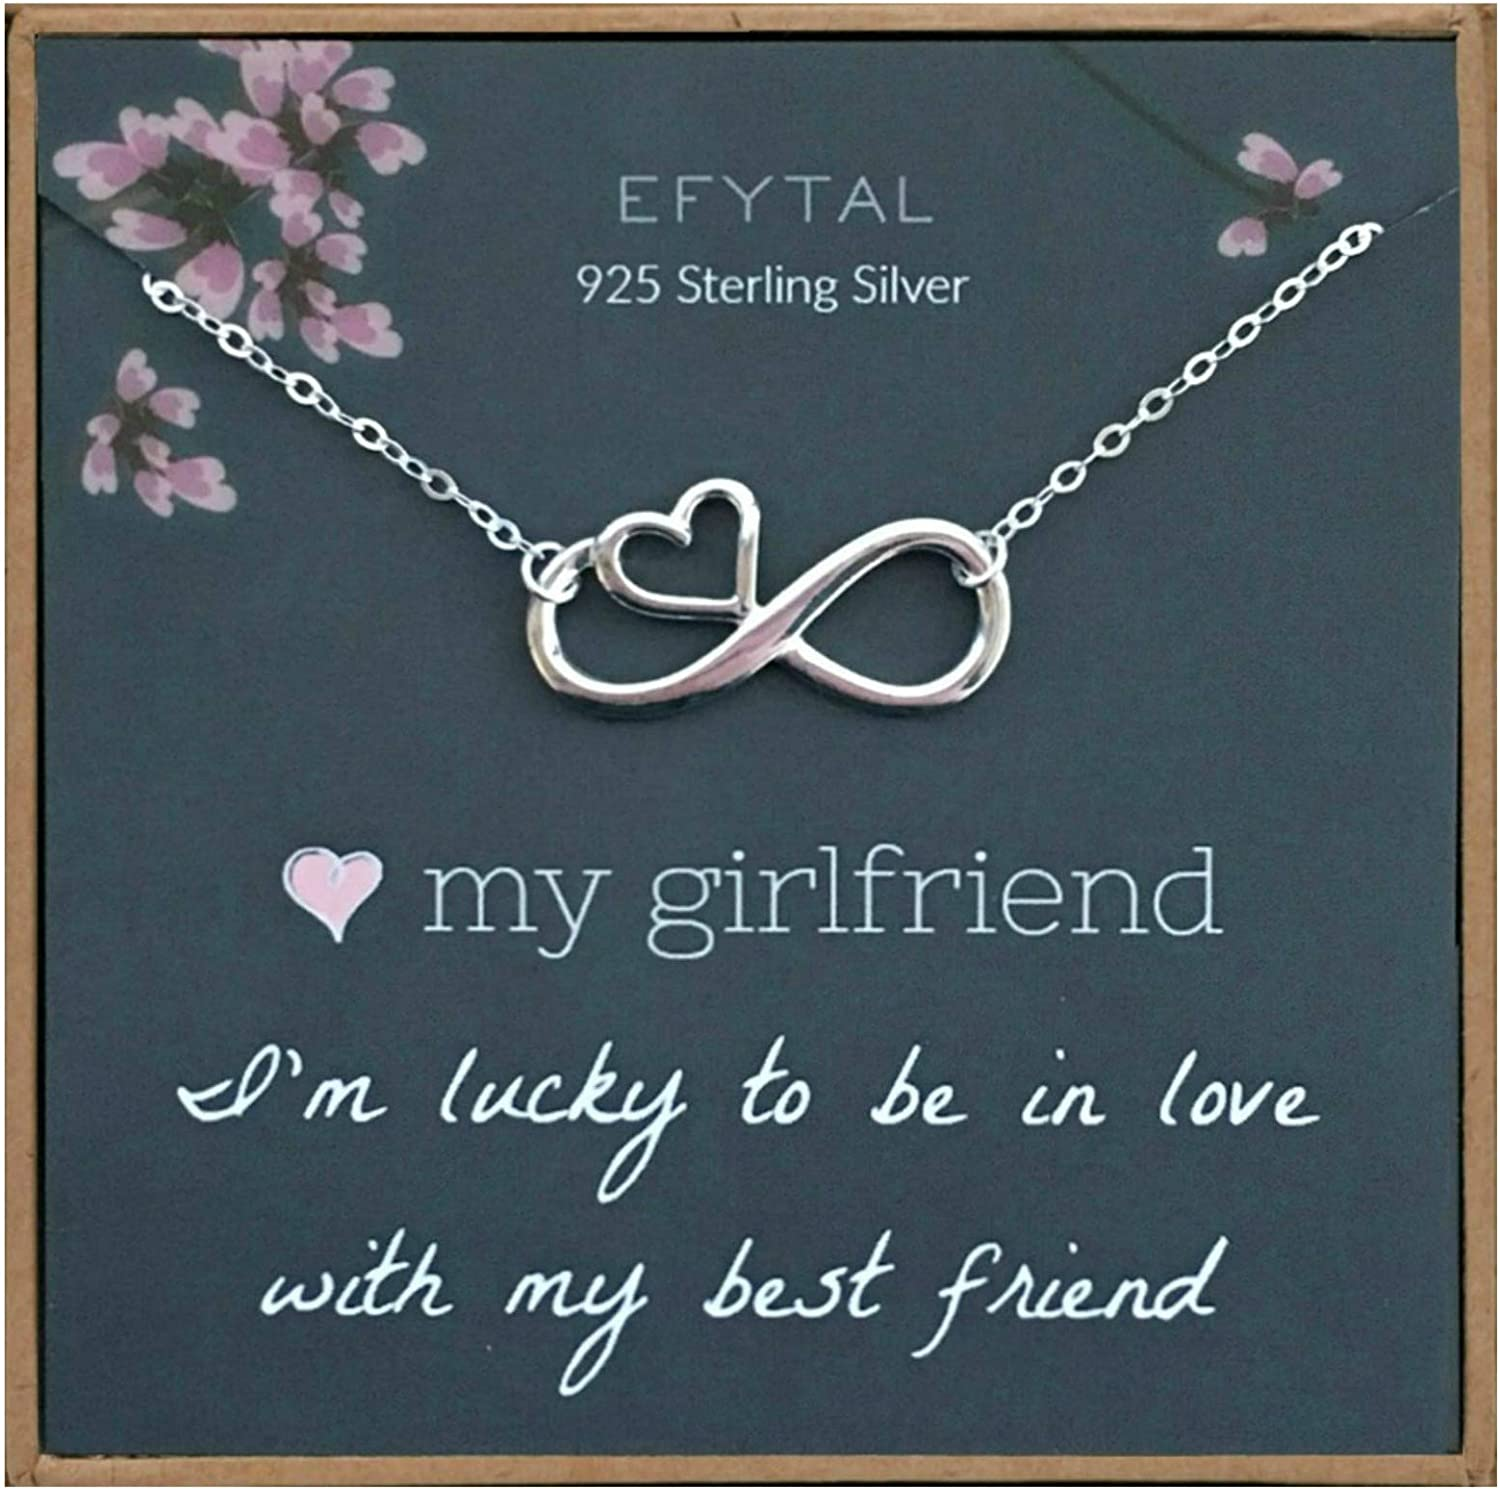 Amazon Com Efytal Girlfriend Gifts Girlfriend Birthday Gift Ideas For Her Romantic Sterling Silver Infinity With Heart Necklace Jewelry For Women Cute Anniversary Valentines Day Present Clothing